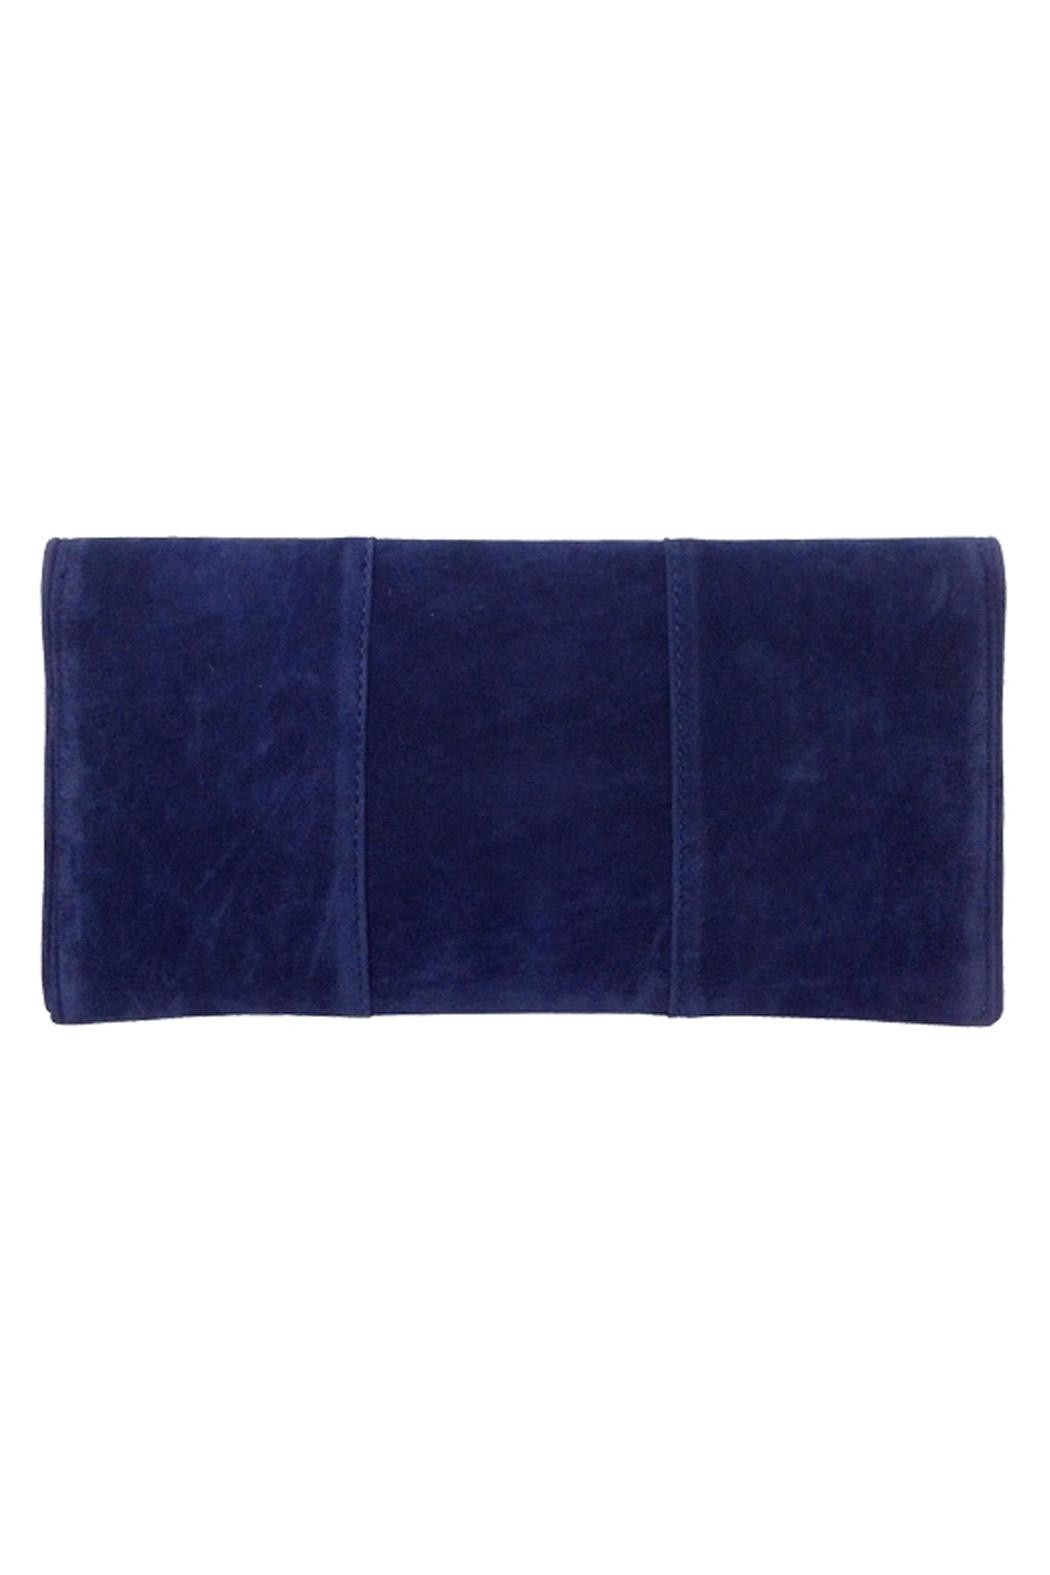 Wild Lilies Jewelry  Velvet Envelope Clutch - Front Full Image